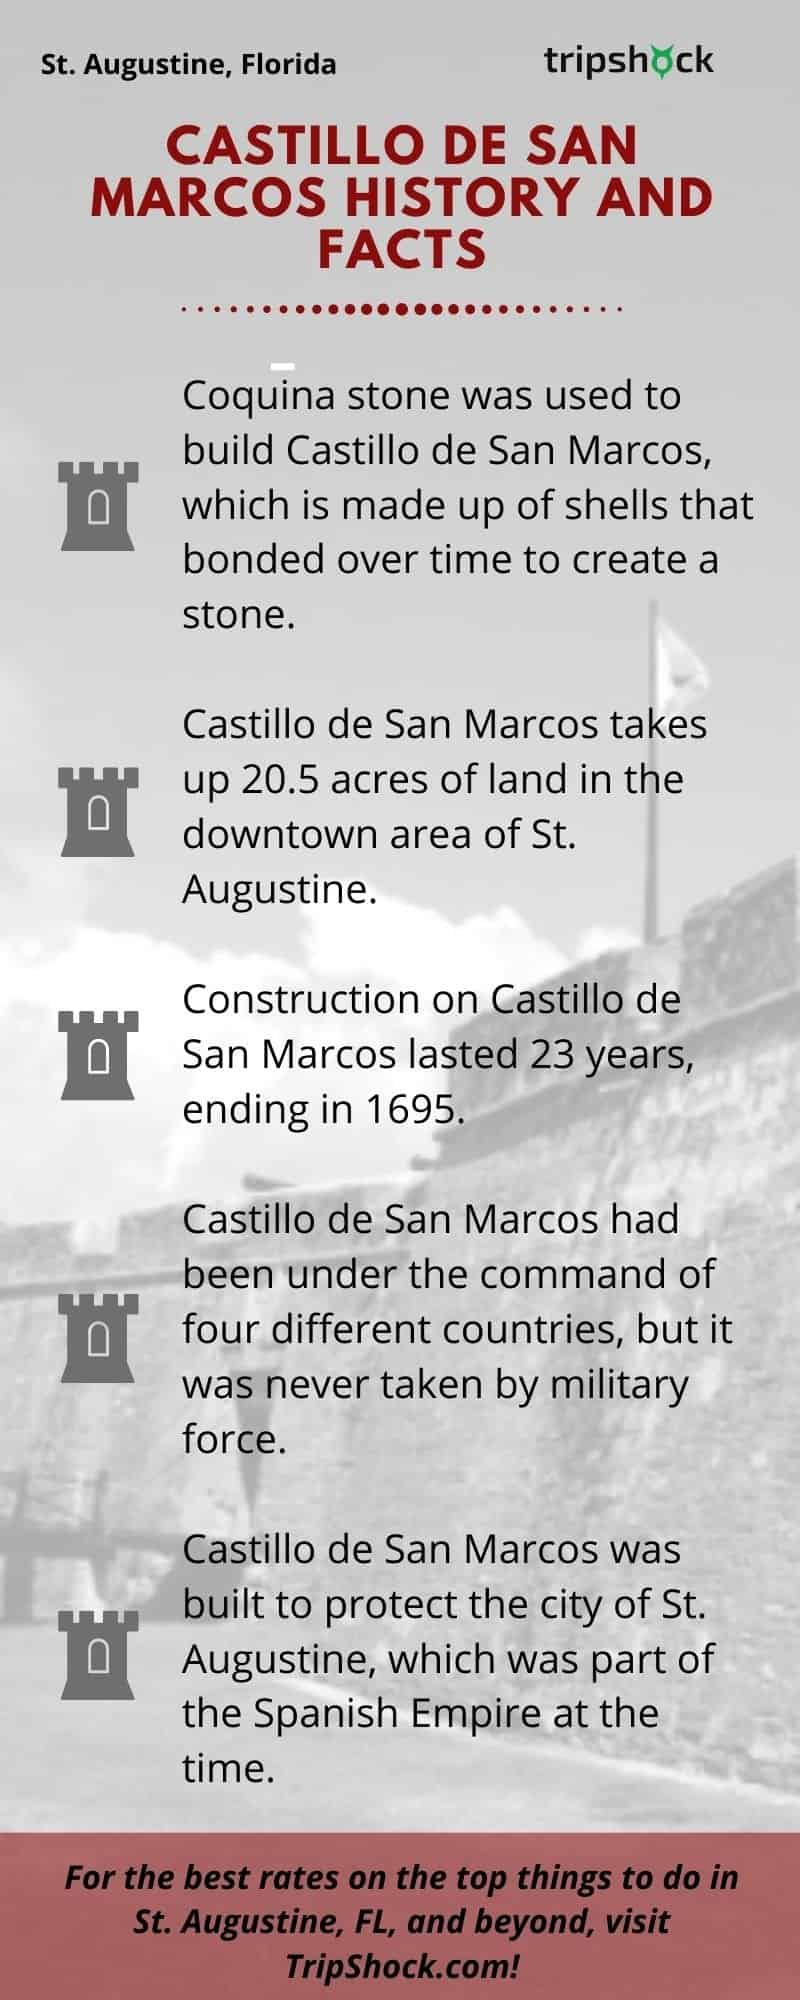 Castillo de San Marcos History and Facts